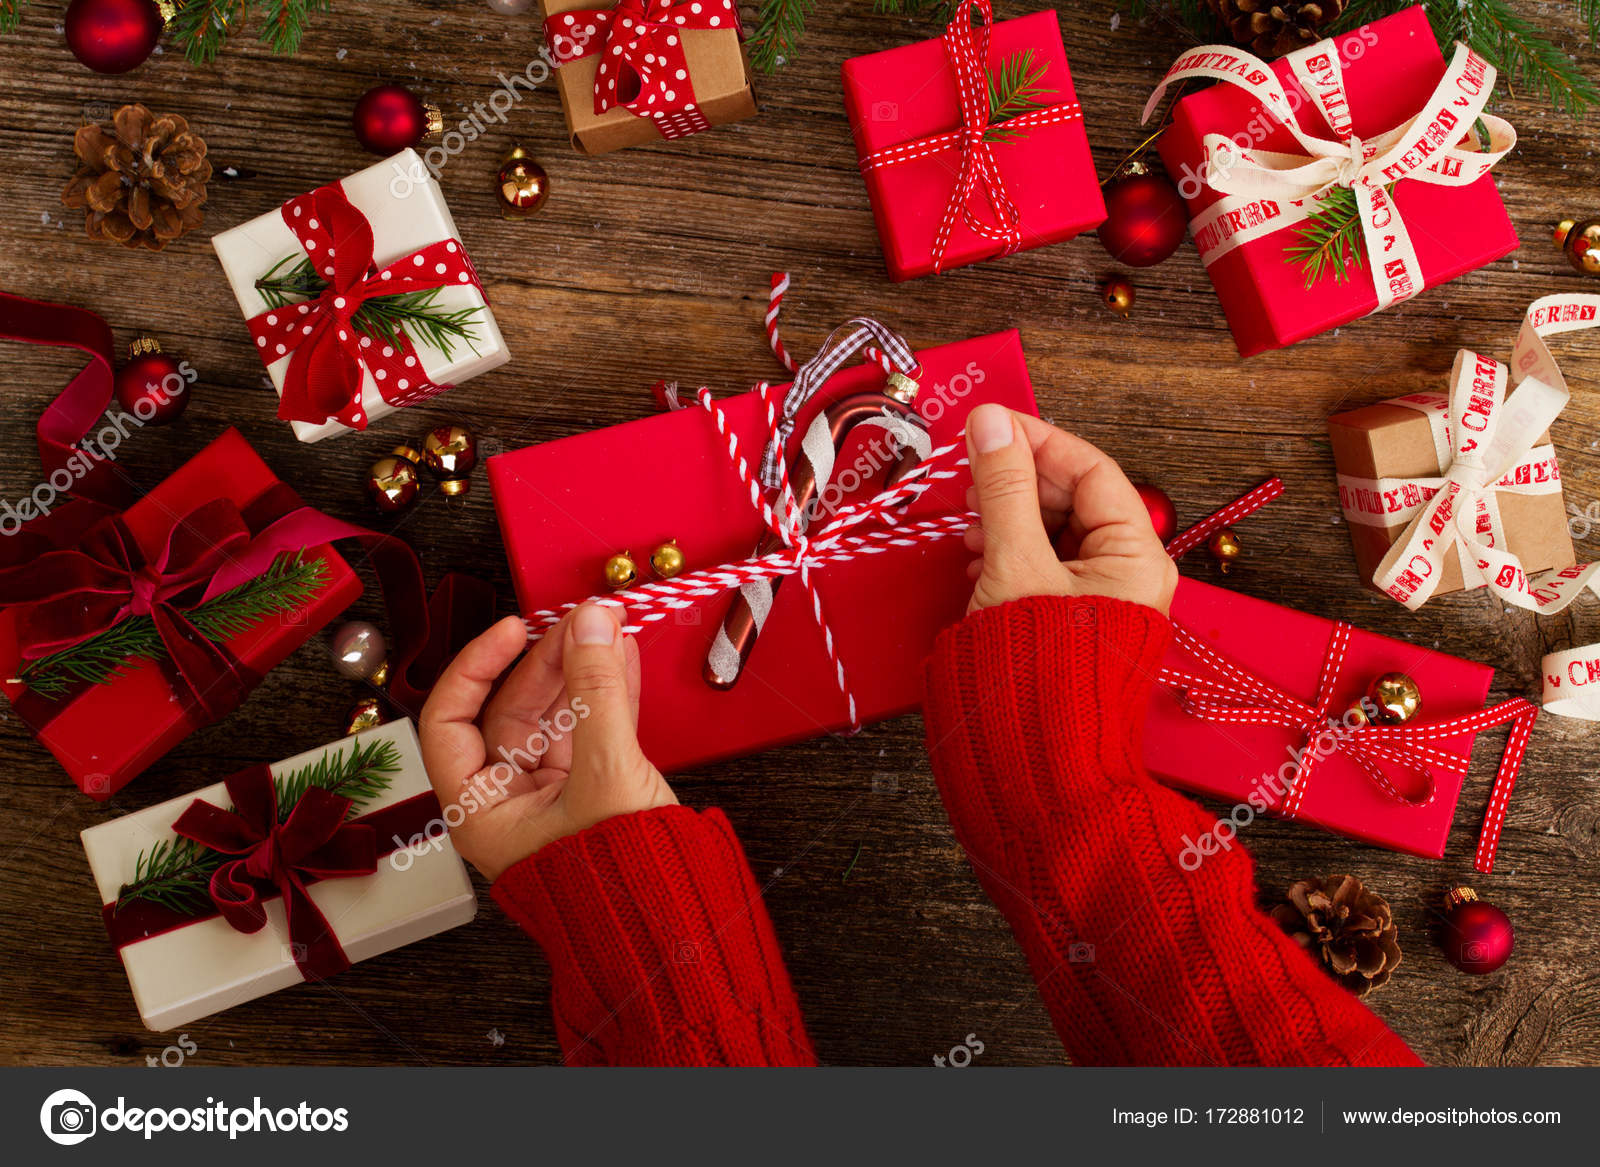 Christmas gift giving stock photo neirfys 172881012 christmas gift giving hand wrapping red and white paper christmas gift boxes on wooden background photo by neirfys negle Images